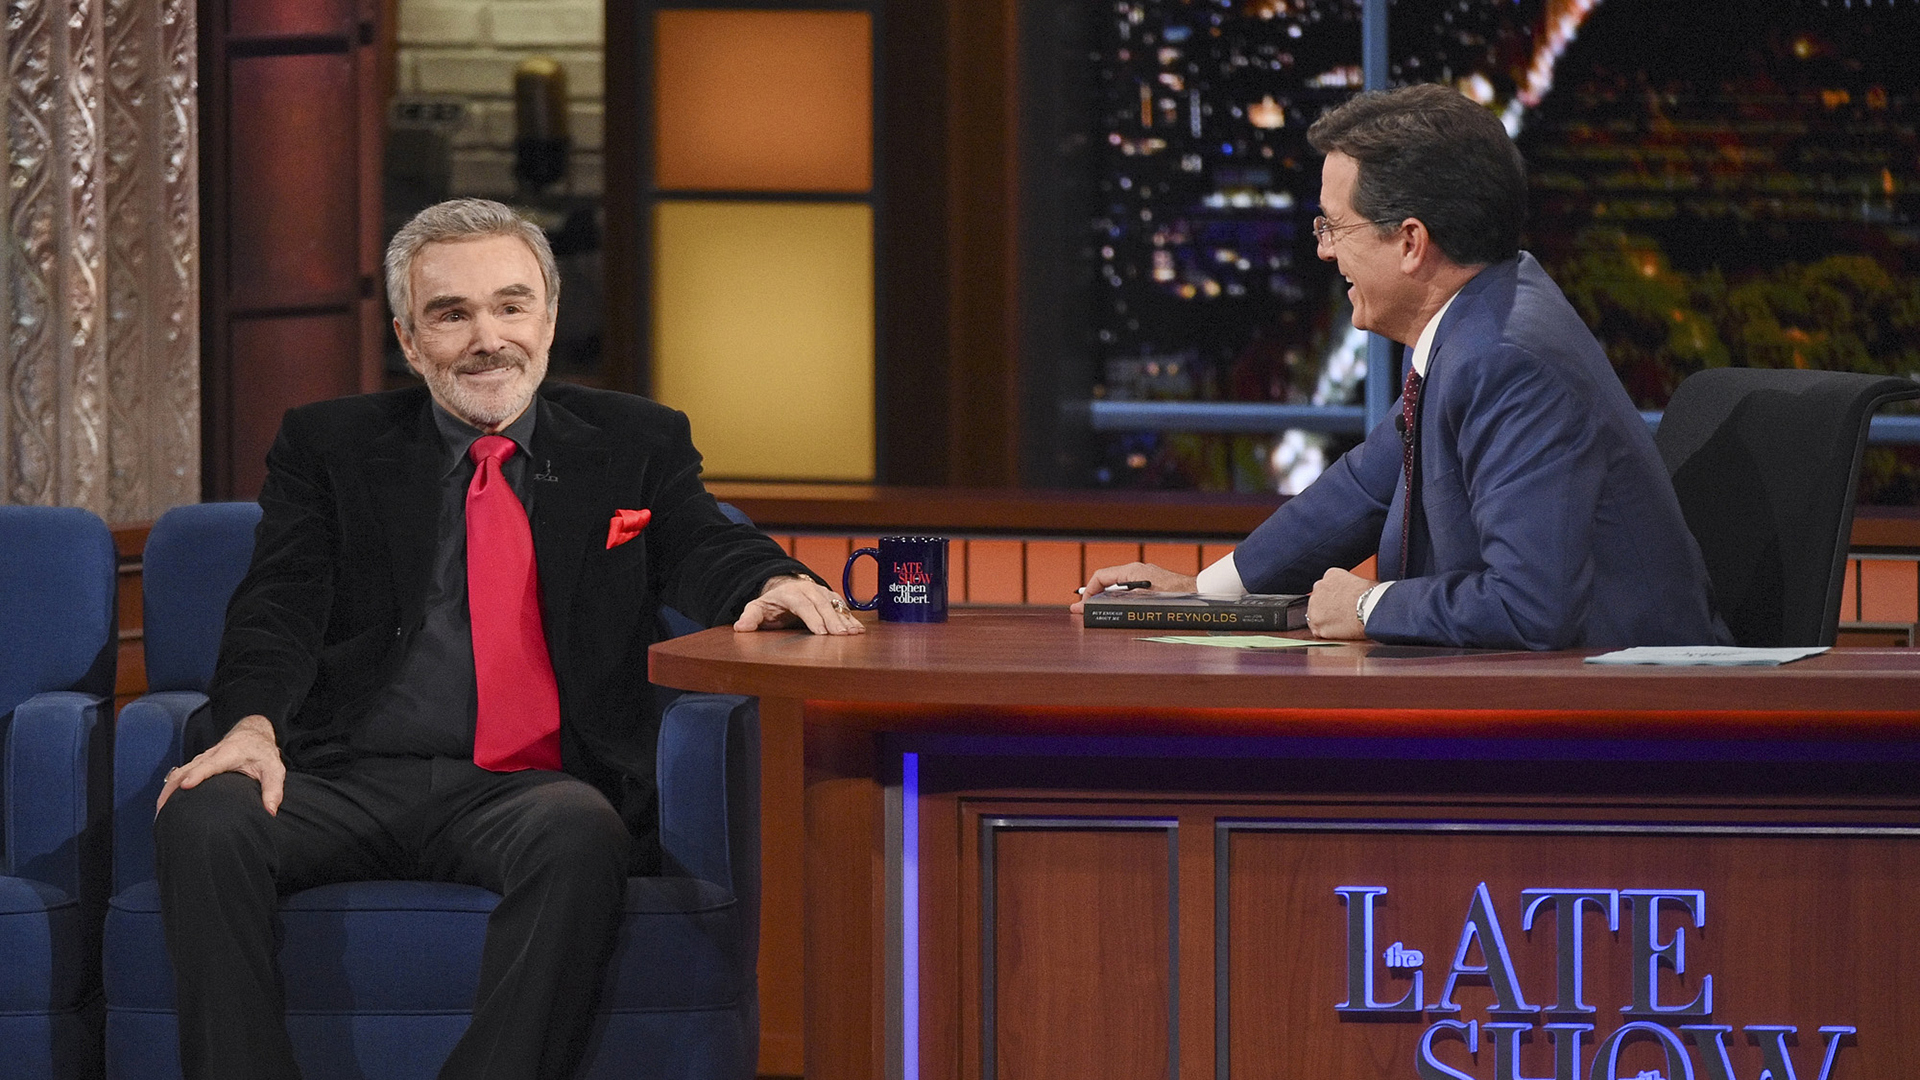 Burt Reynolds and Stephen Colbert